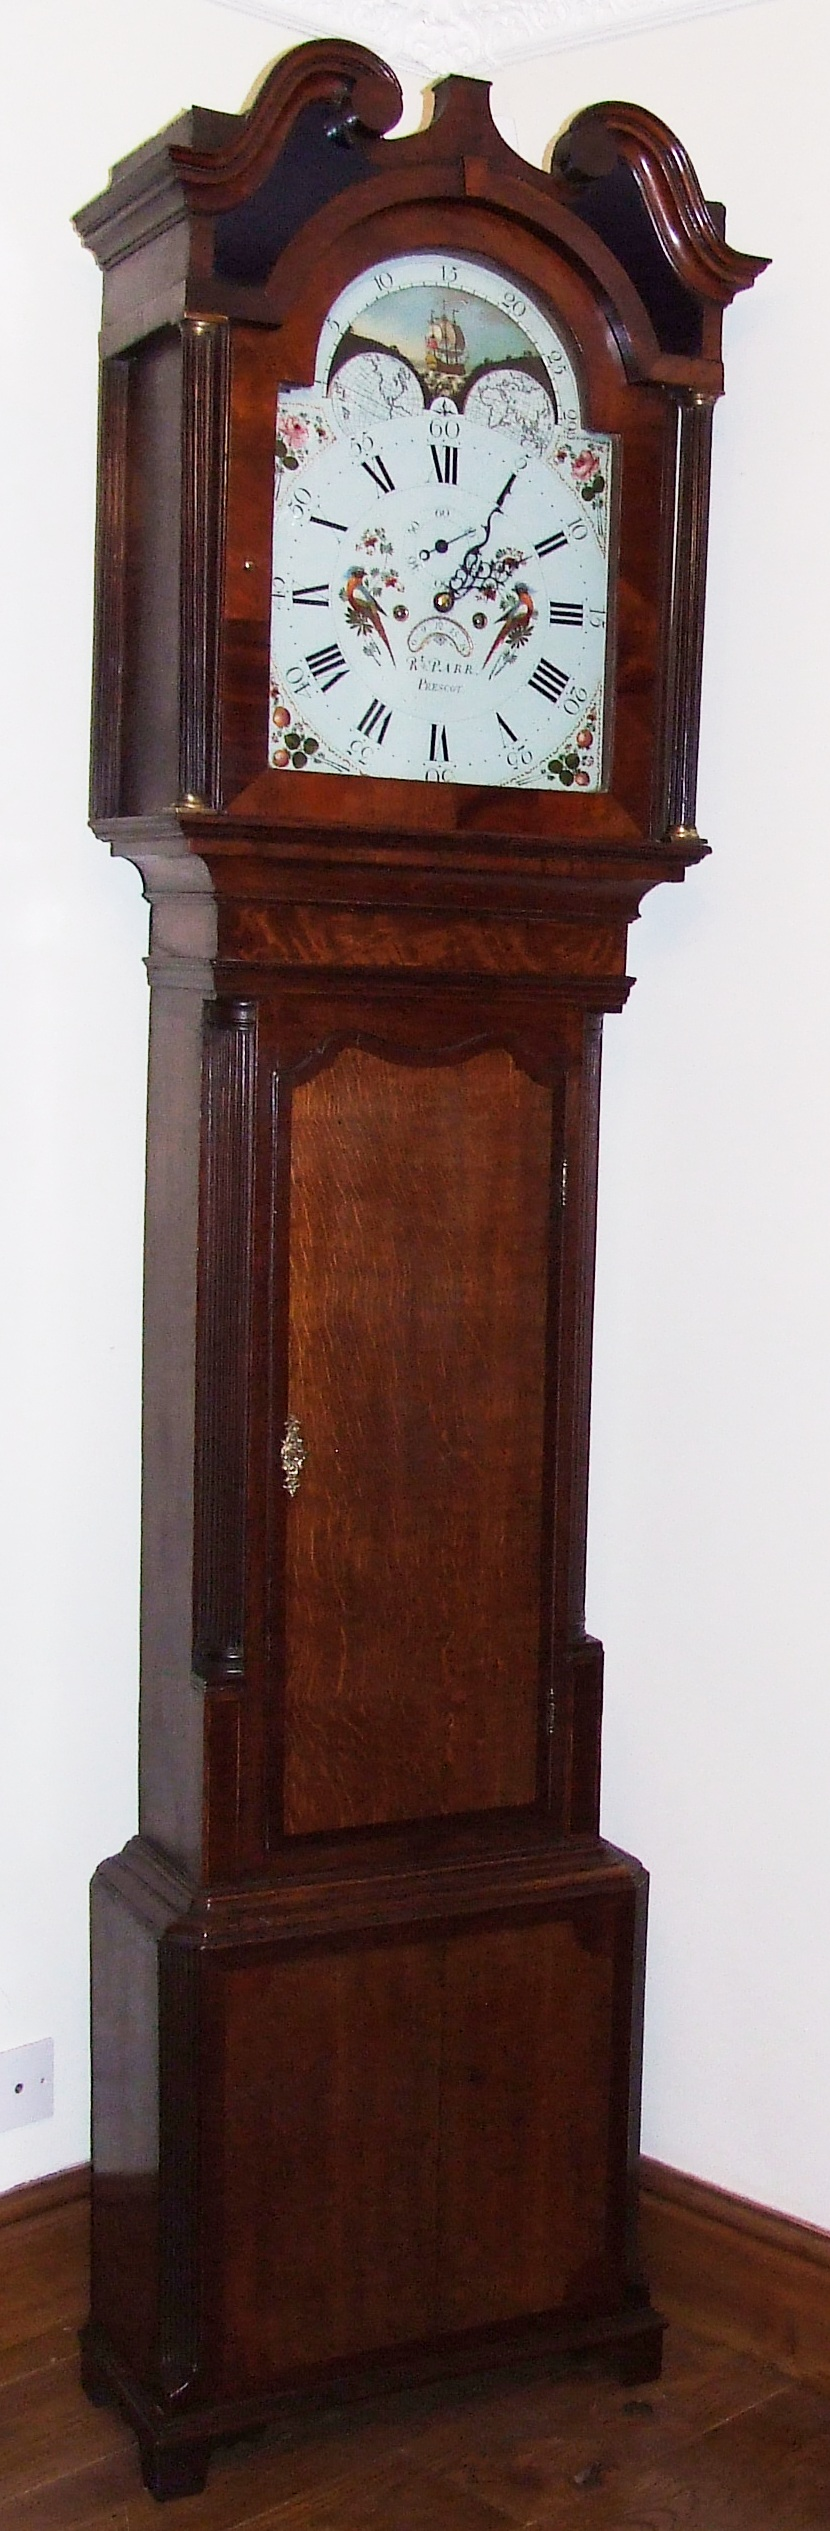 Antique Rolling Moon Oak Gany Longcase Grandfather Clock R Parr Prescot